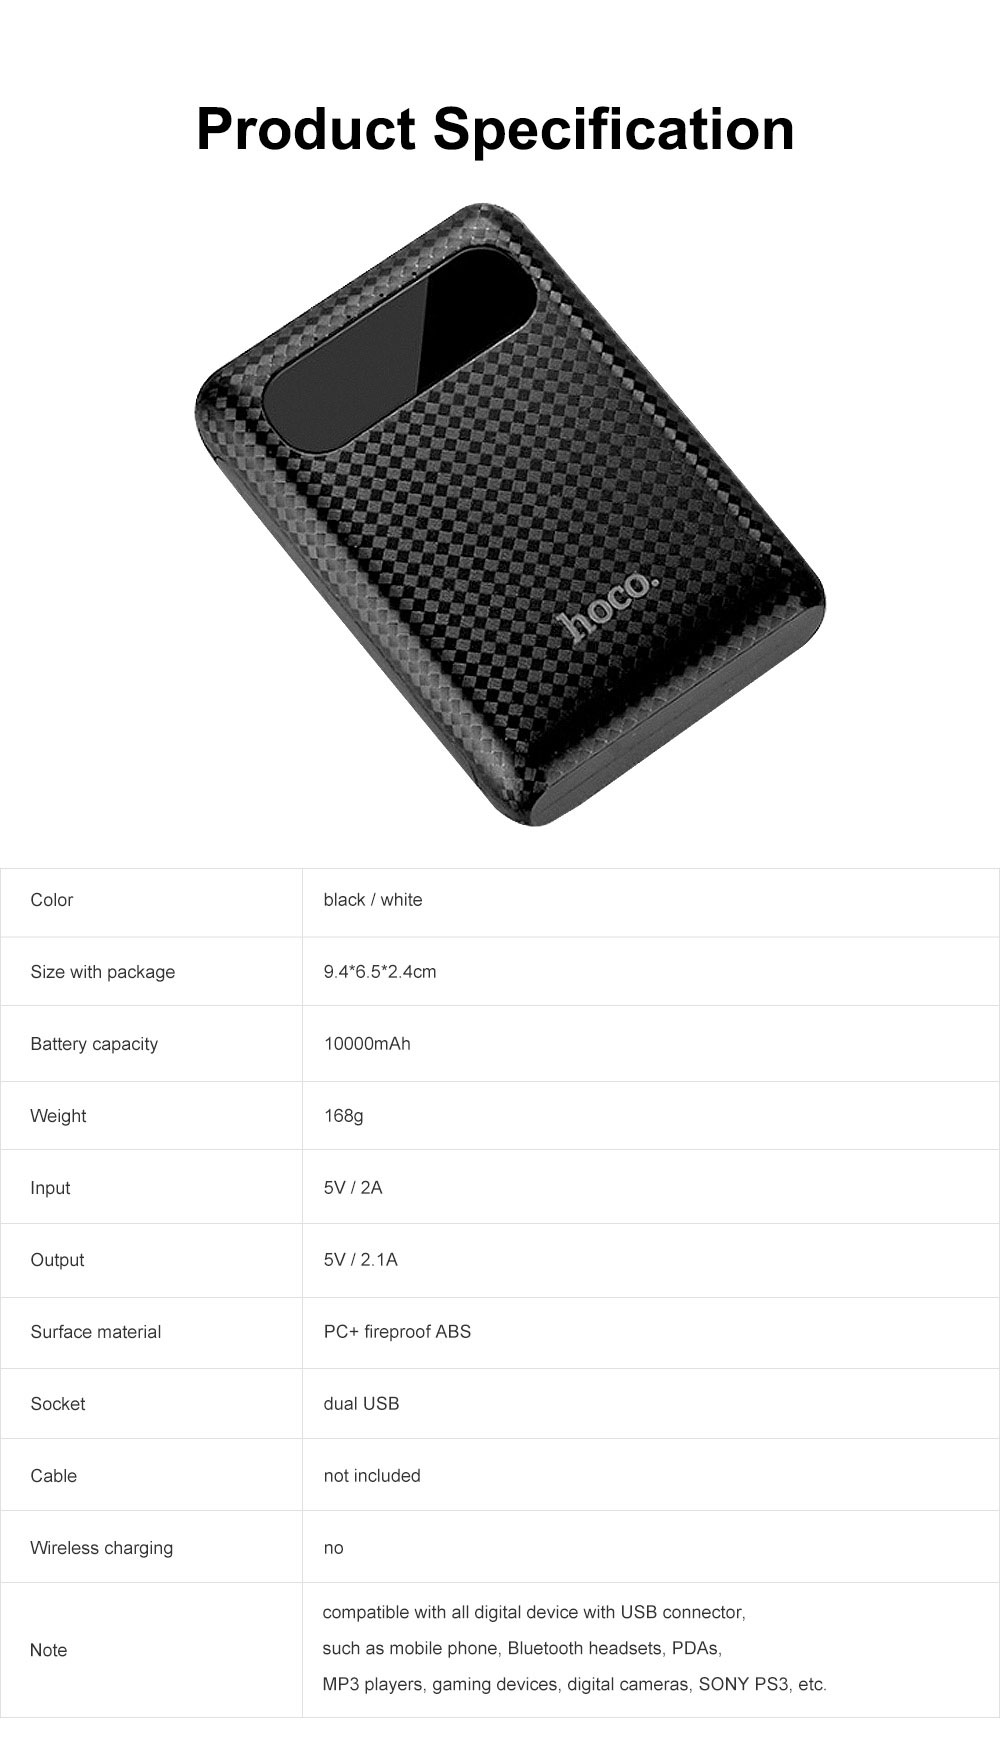 Exquisite Mini Pocket Carbon Fiber Plaids External Battery Fireproof ABS Charger Dual USB Power Bank for Cell Phone 10000mAh with LED Lamp 8